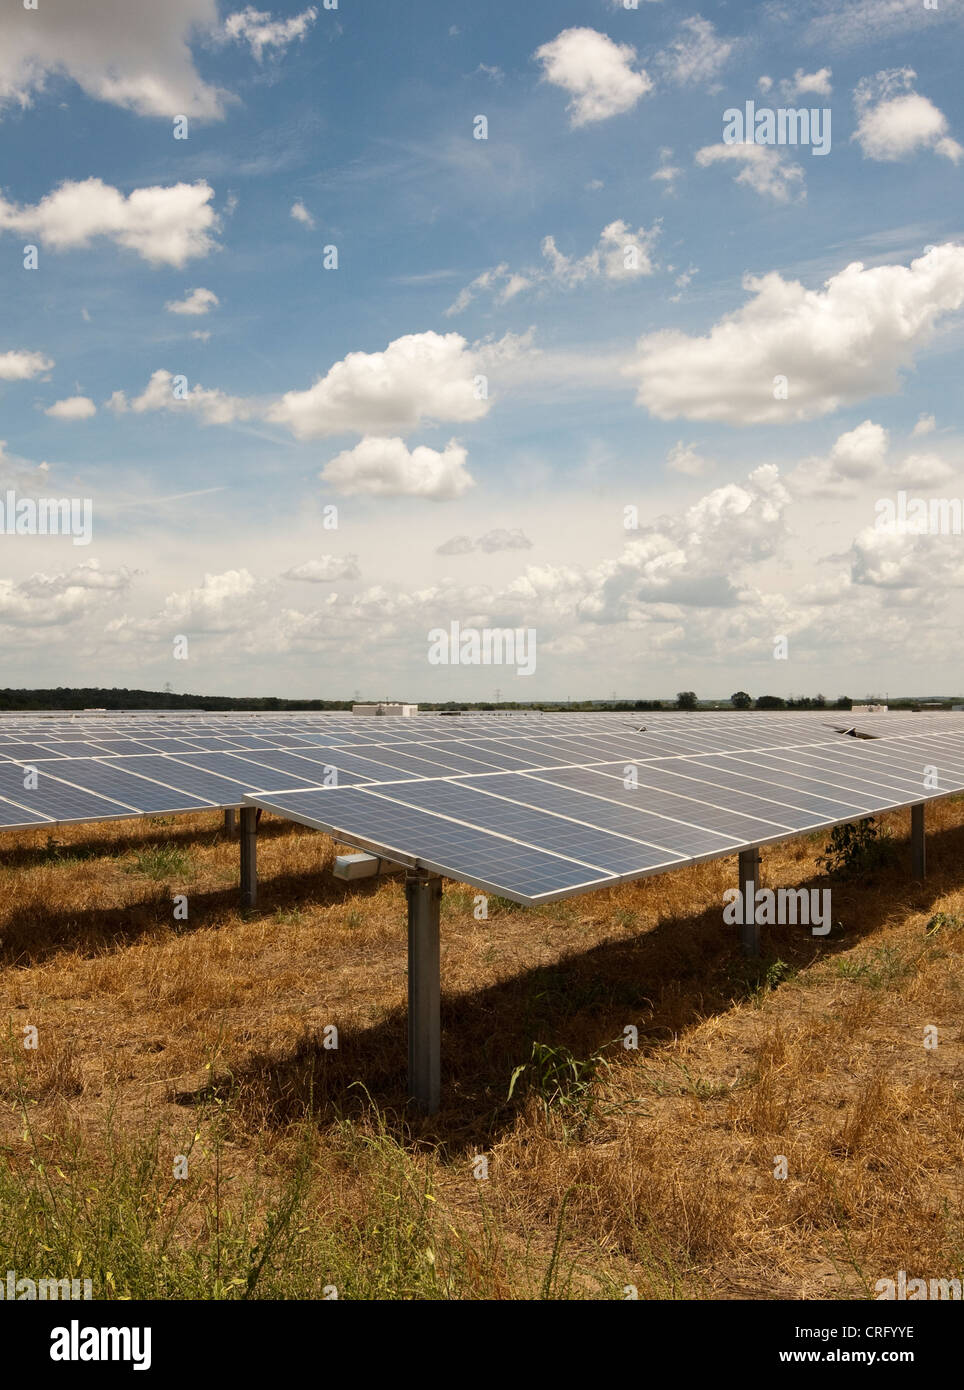 solar panels in Texas. Facility on 380 acres will produce over 50,000 MWH of emission free power annually to power - Stock Image